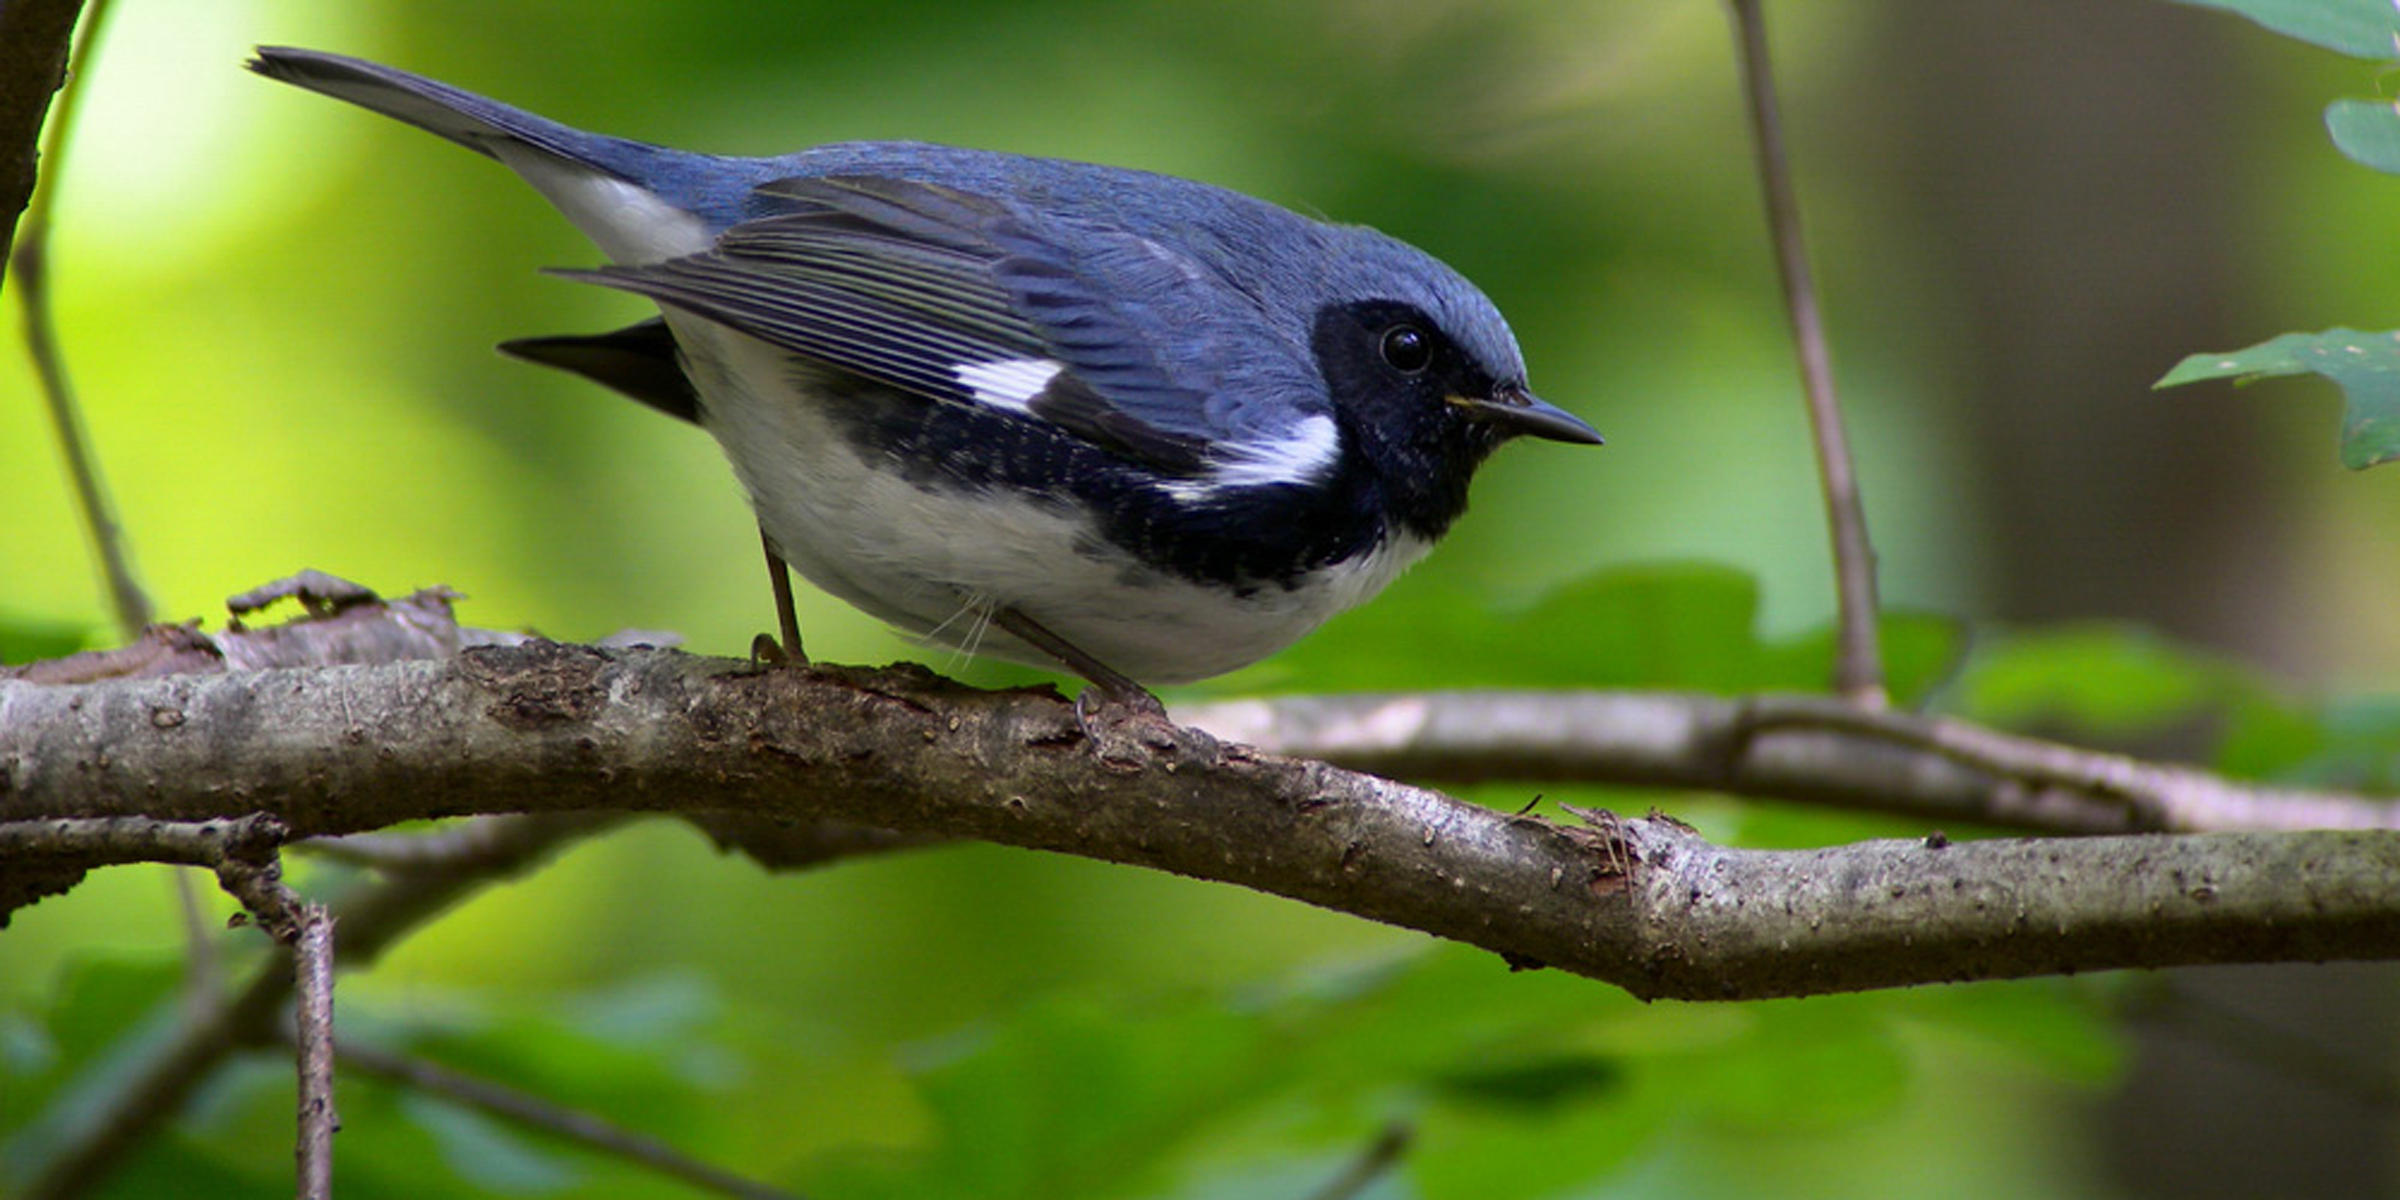 Black-throated Blue Warbler by Megumi Aita